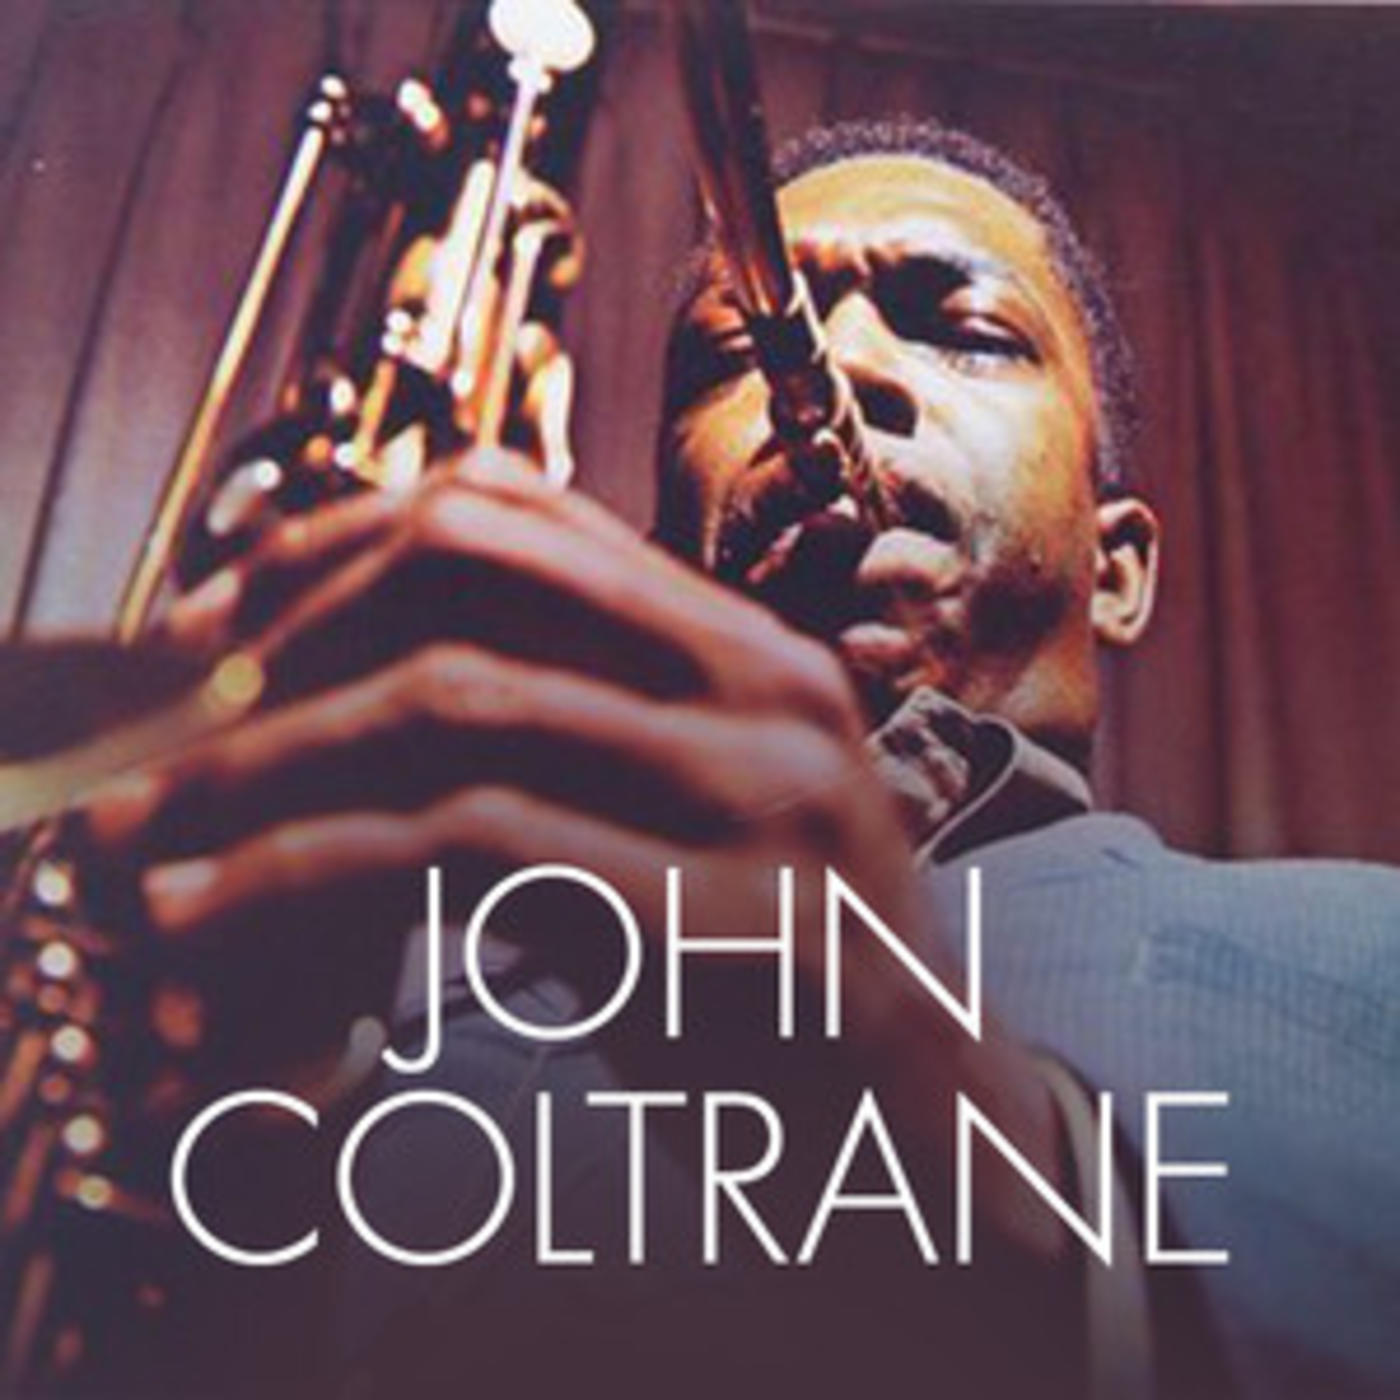 John Coltrane Official playlist - Giant Steps, Cousin Mary, Countdown, Like Sonny, Blue Train